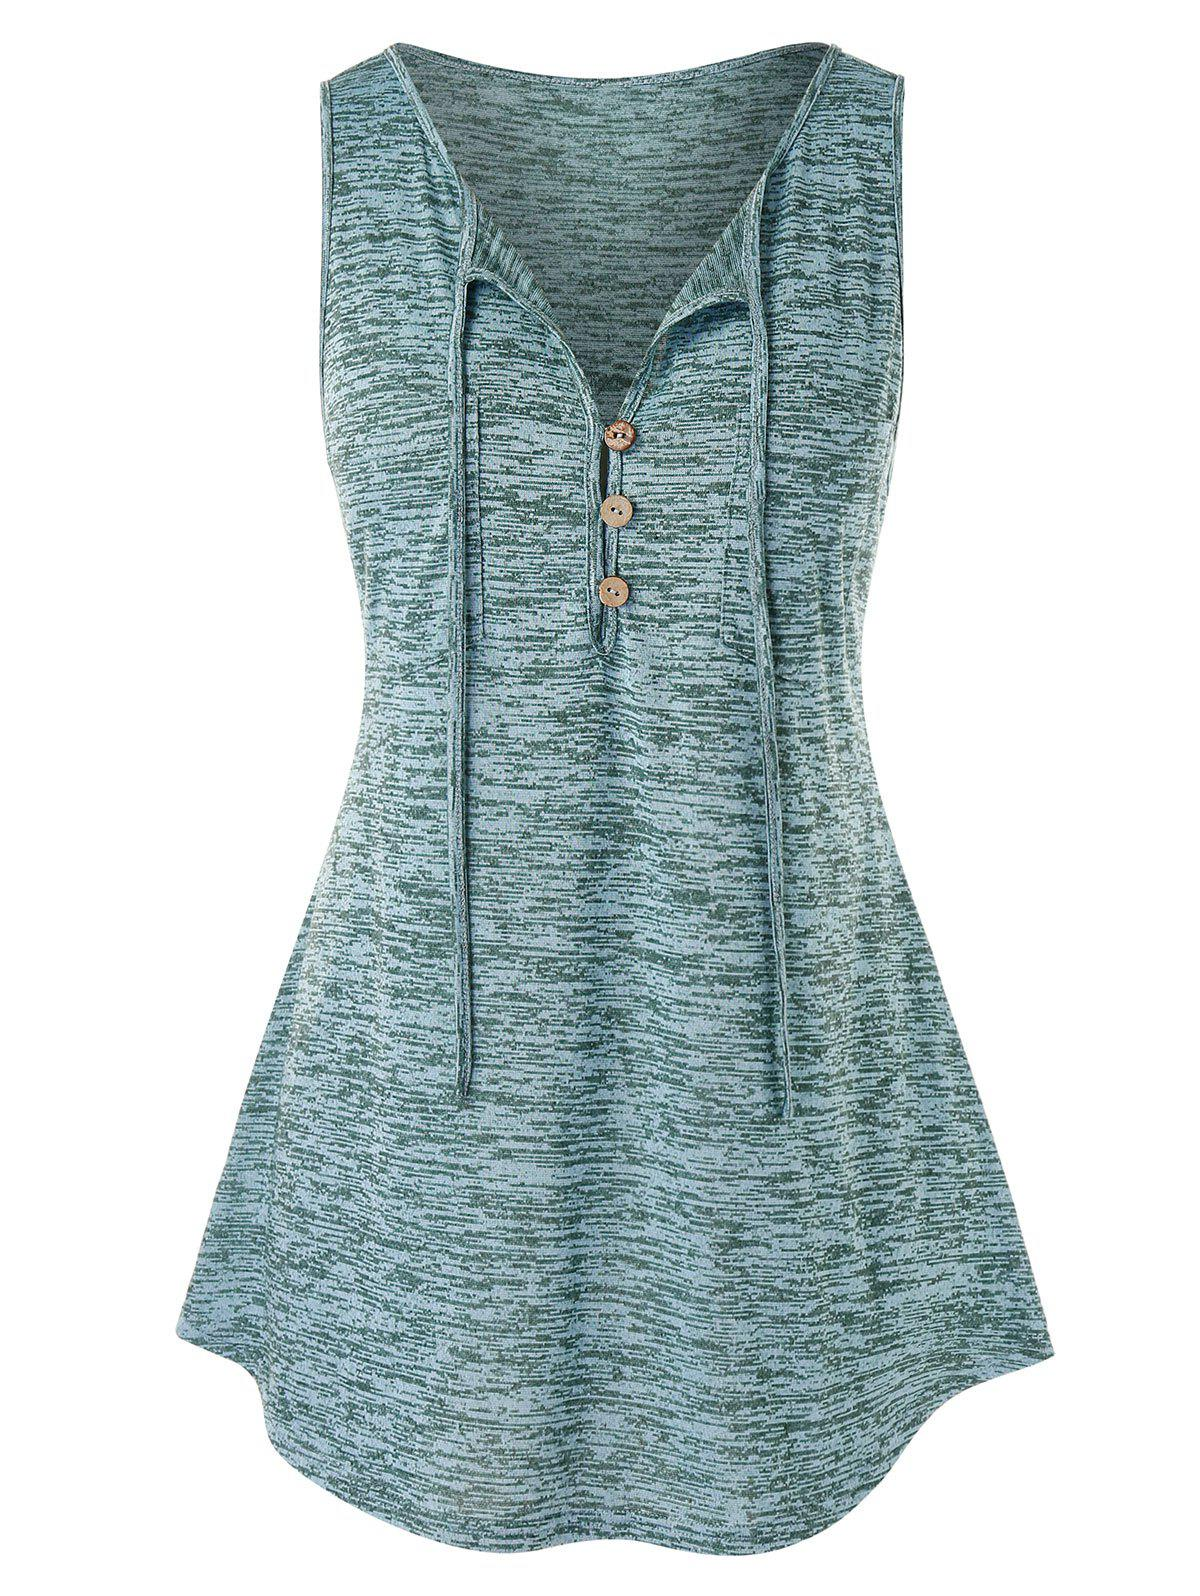 Plus Size Button Embellished Marled Tank Top - MEDIUM TURQUOISE 1X